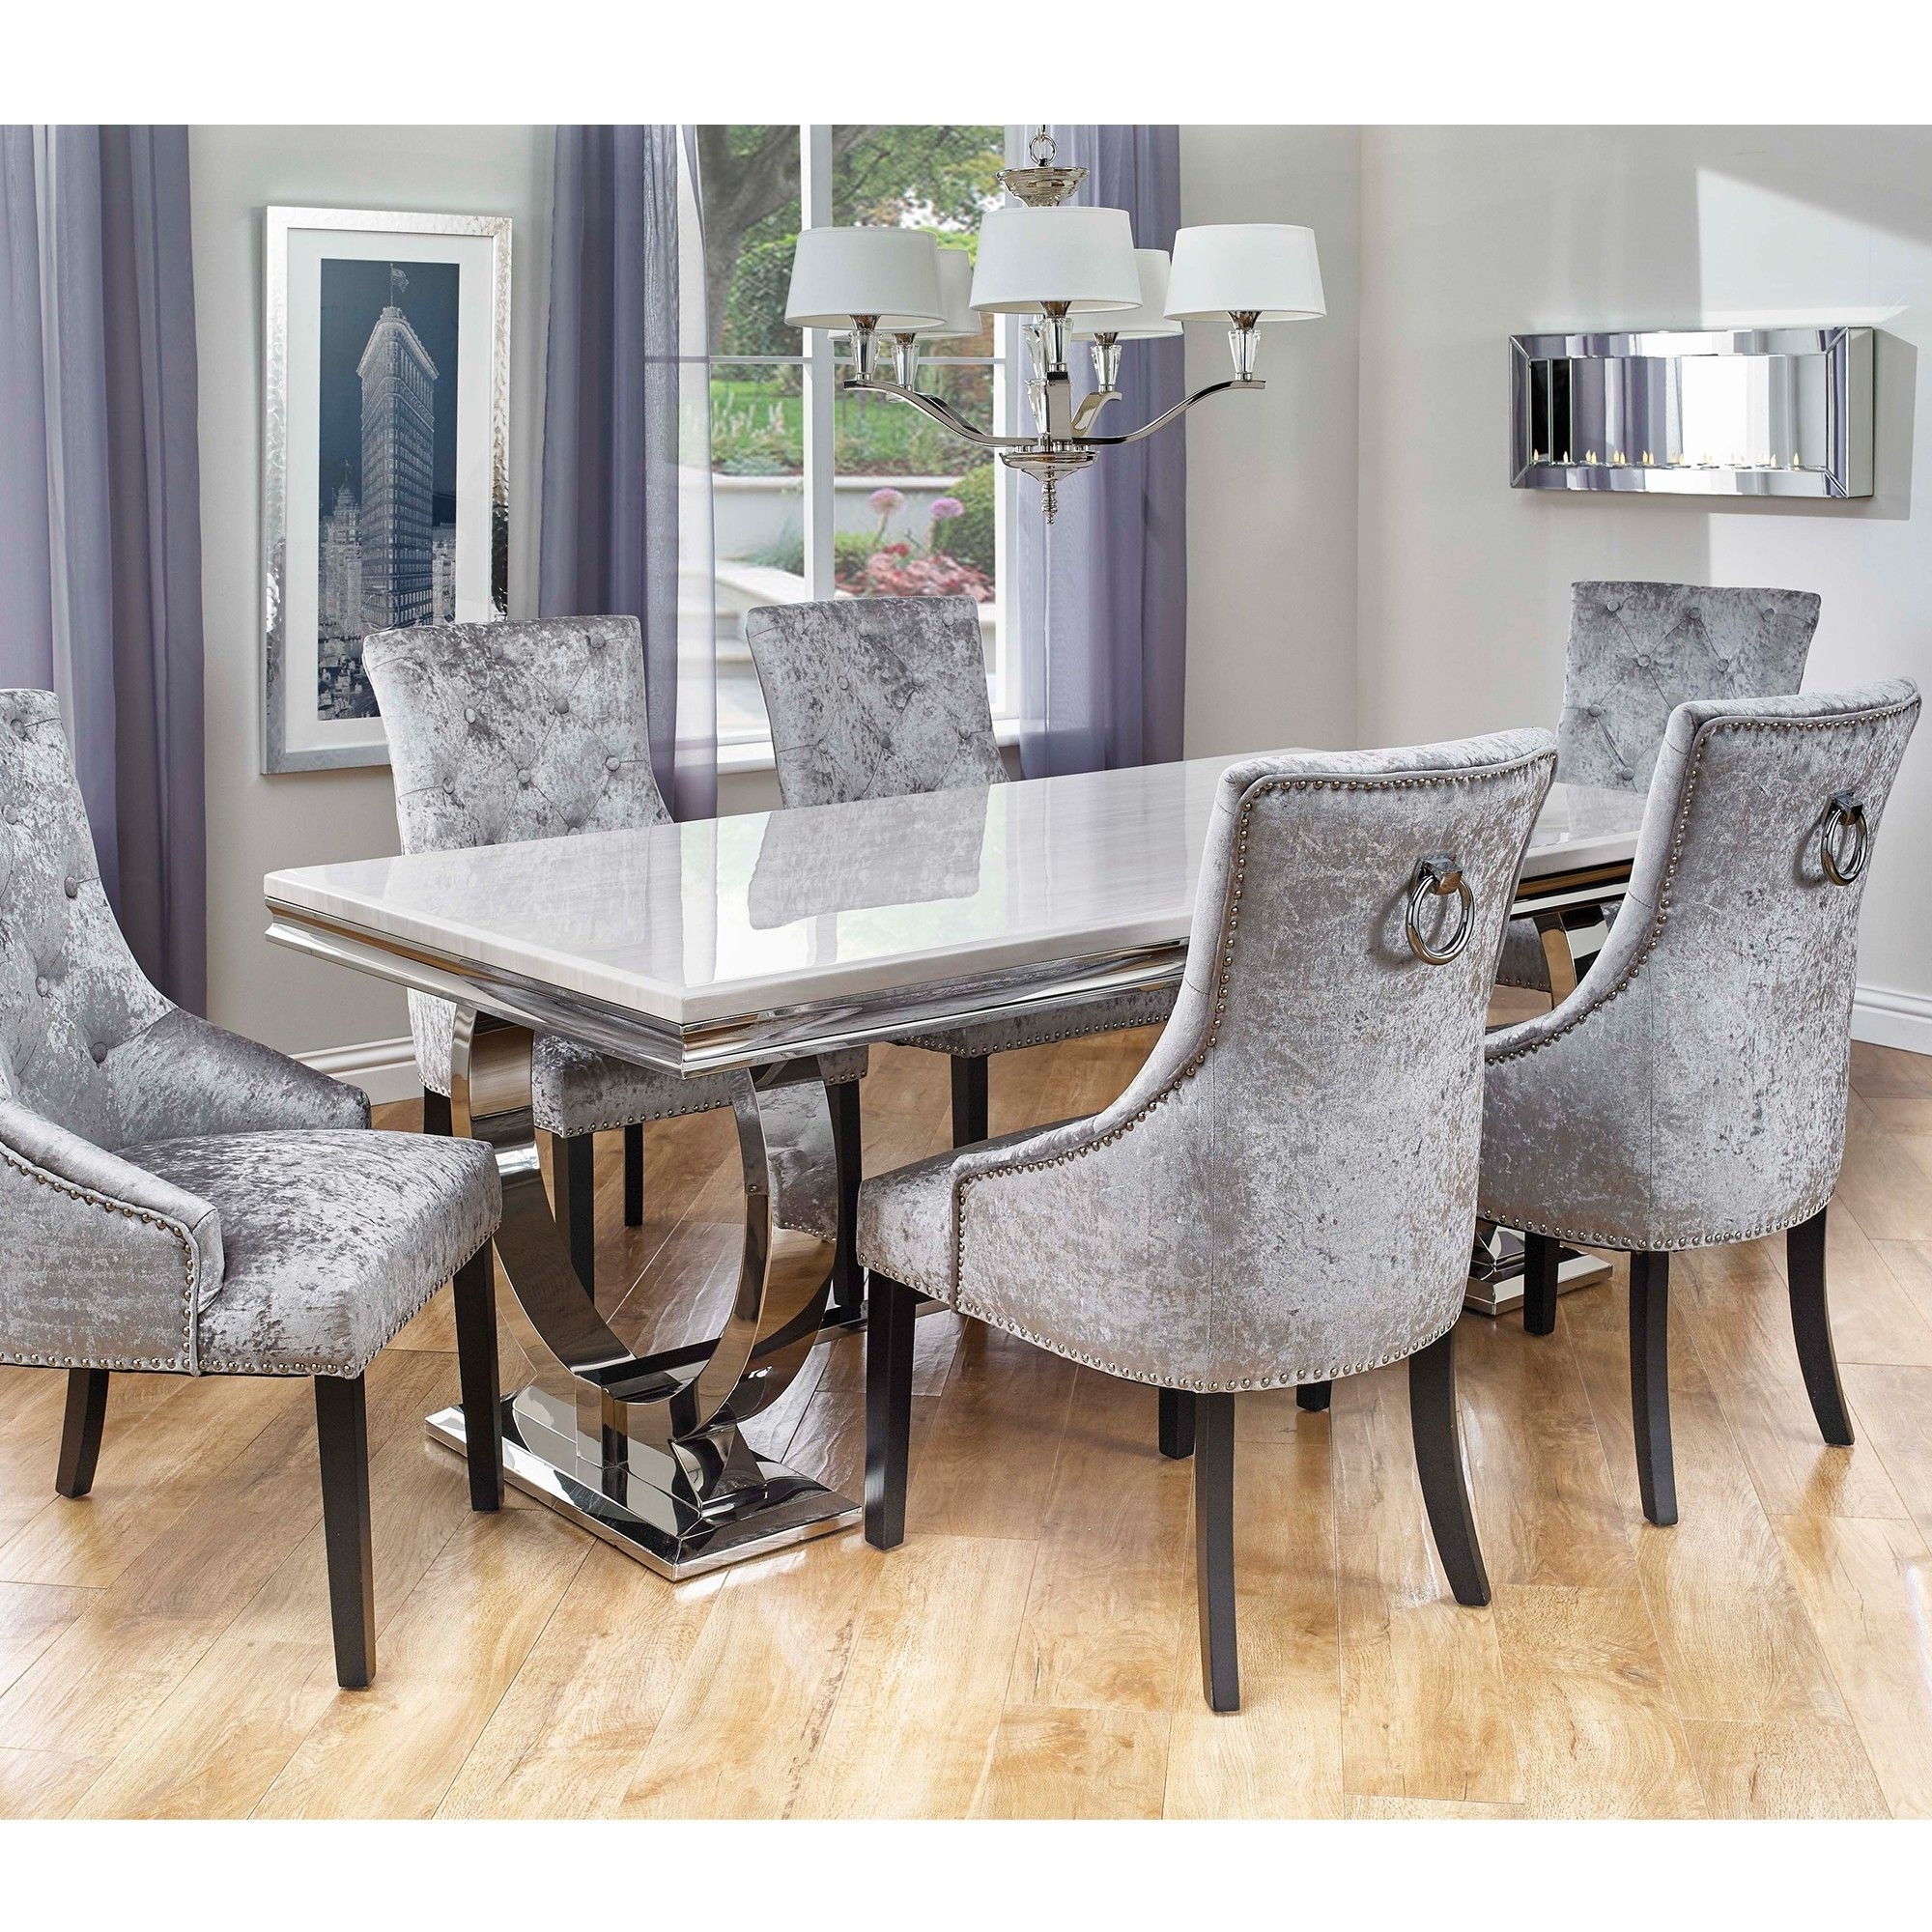 Palazzo 6 Piece Rectangle Dining Sets With Joss Side Chairs For Recent Pinbesthomezone On Dining Room & Bar Furniture (View 16 of 25)